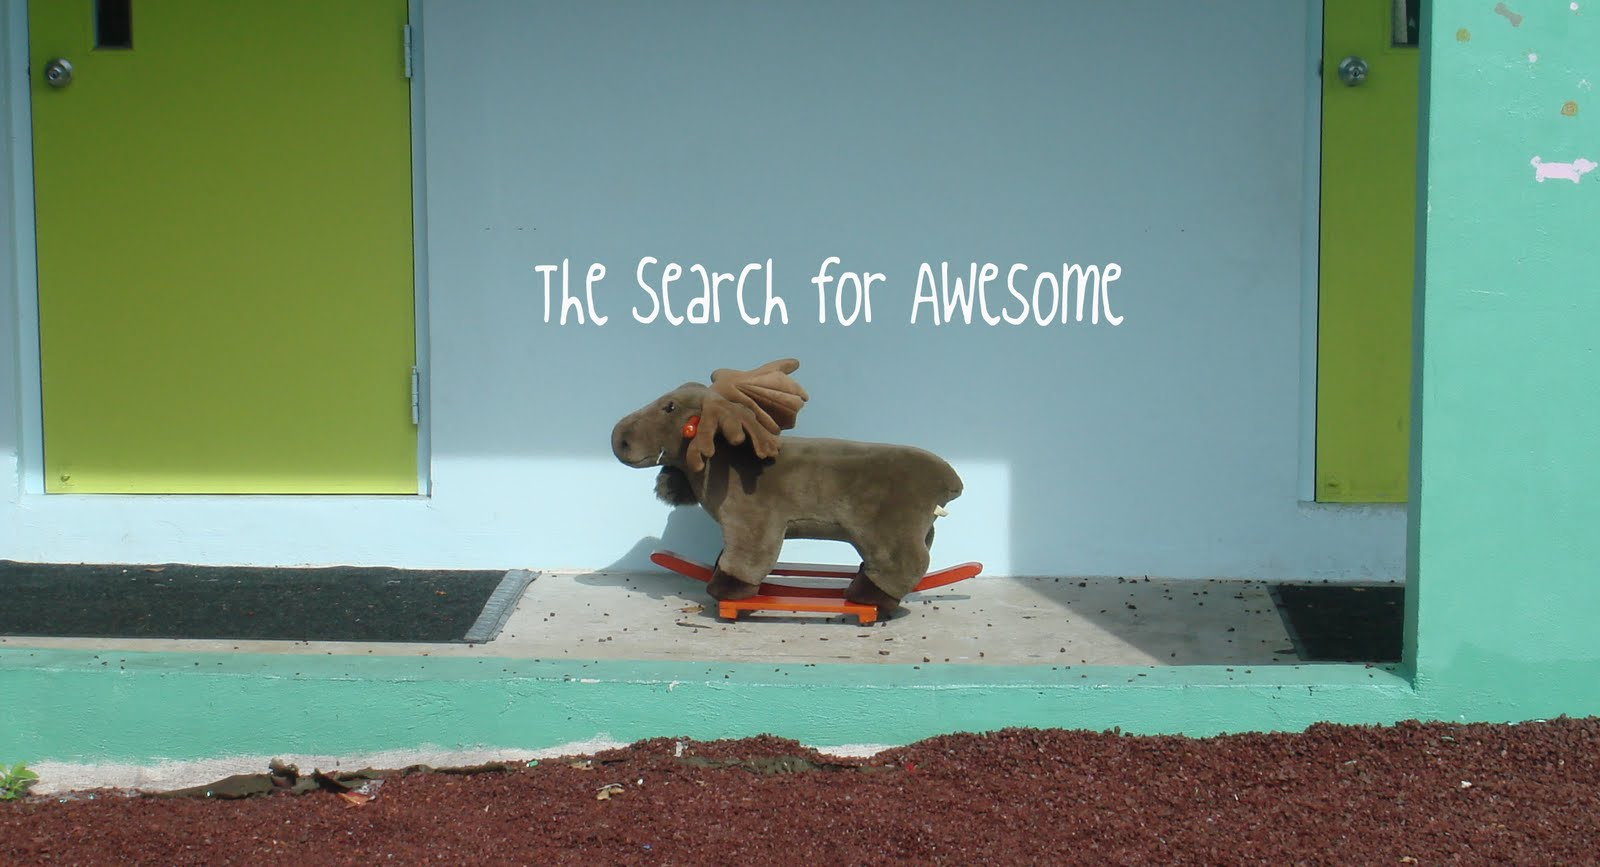 The Search for Awesome